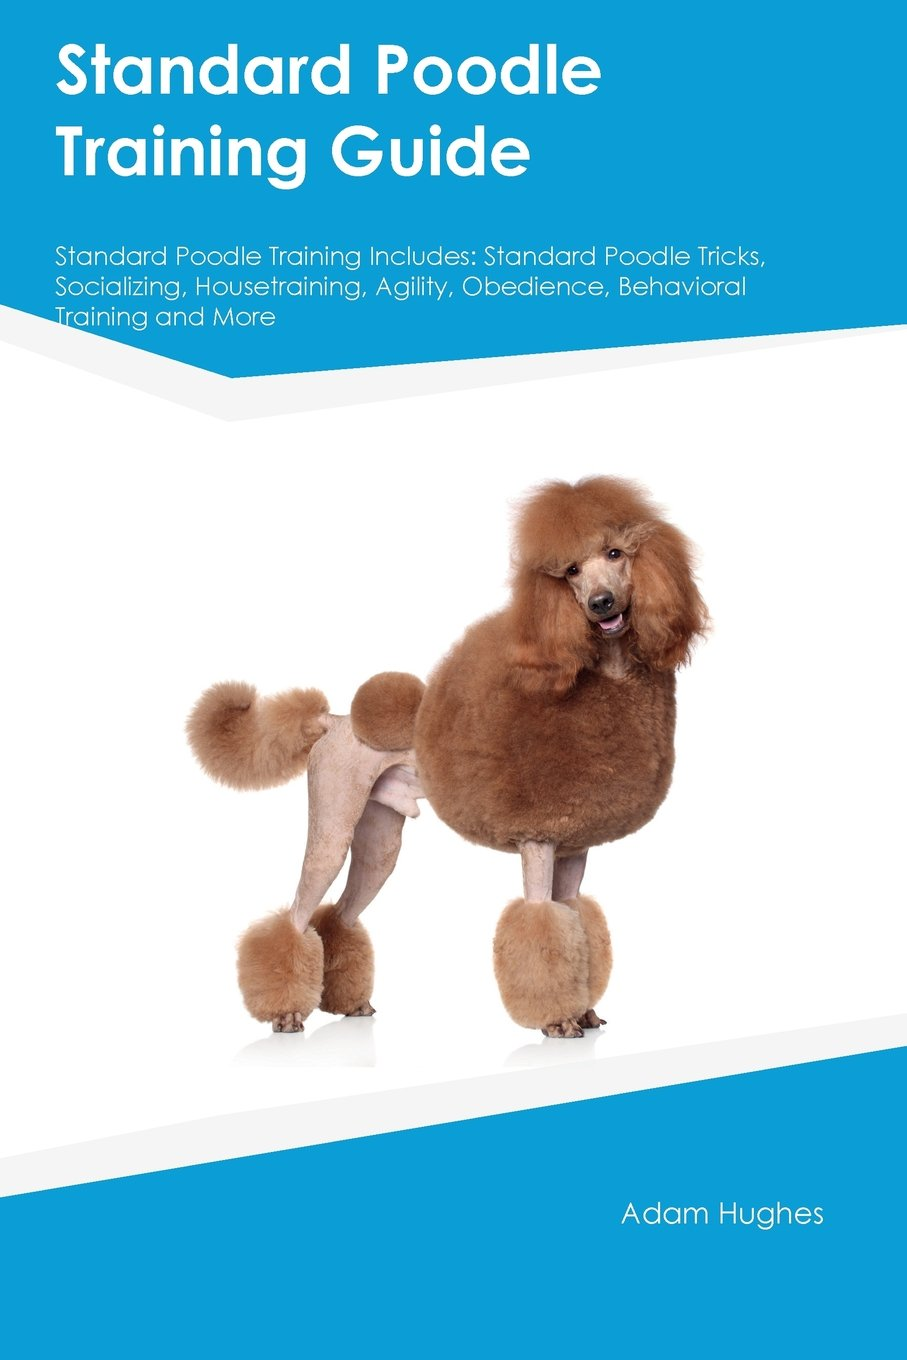 Standard-Poodle-Training-Guide-Standard-Poodle-Training-Includes-Standard-Poodle-Tricks-Socializing-Housetraining-Agility-Obedience-Behavioral-Training-and-More